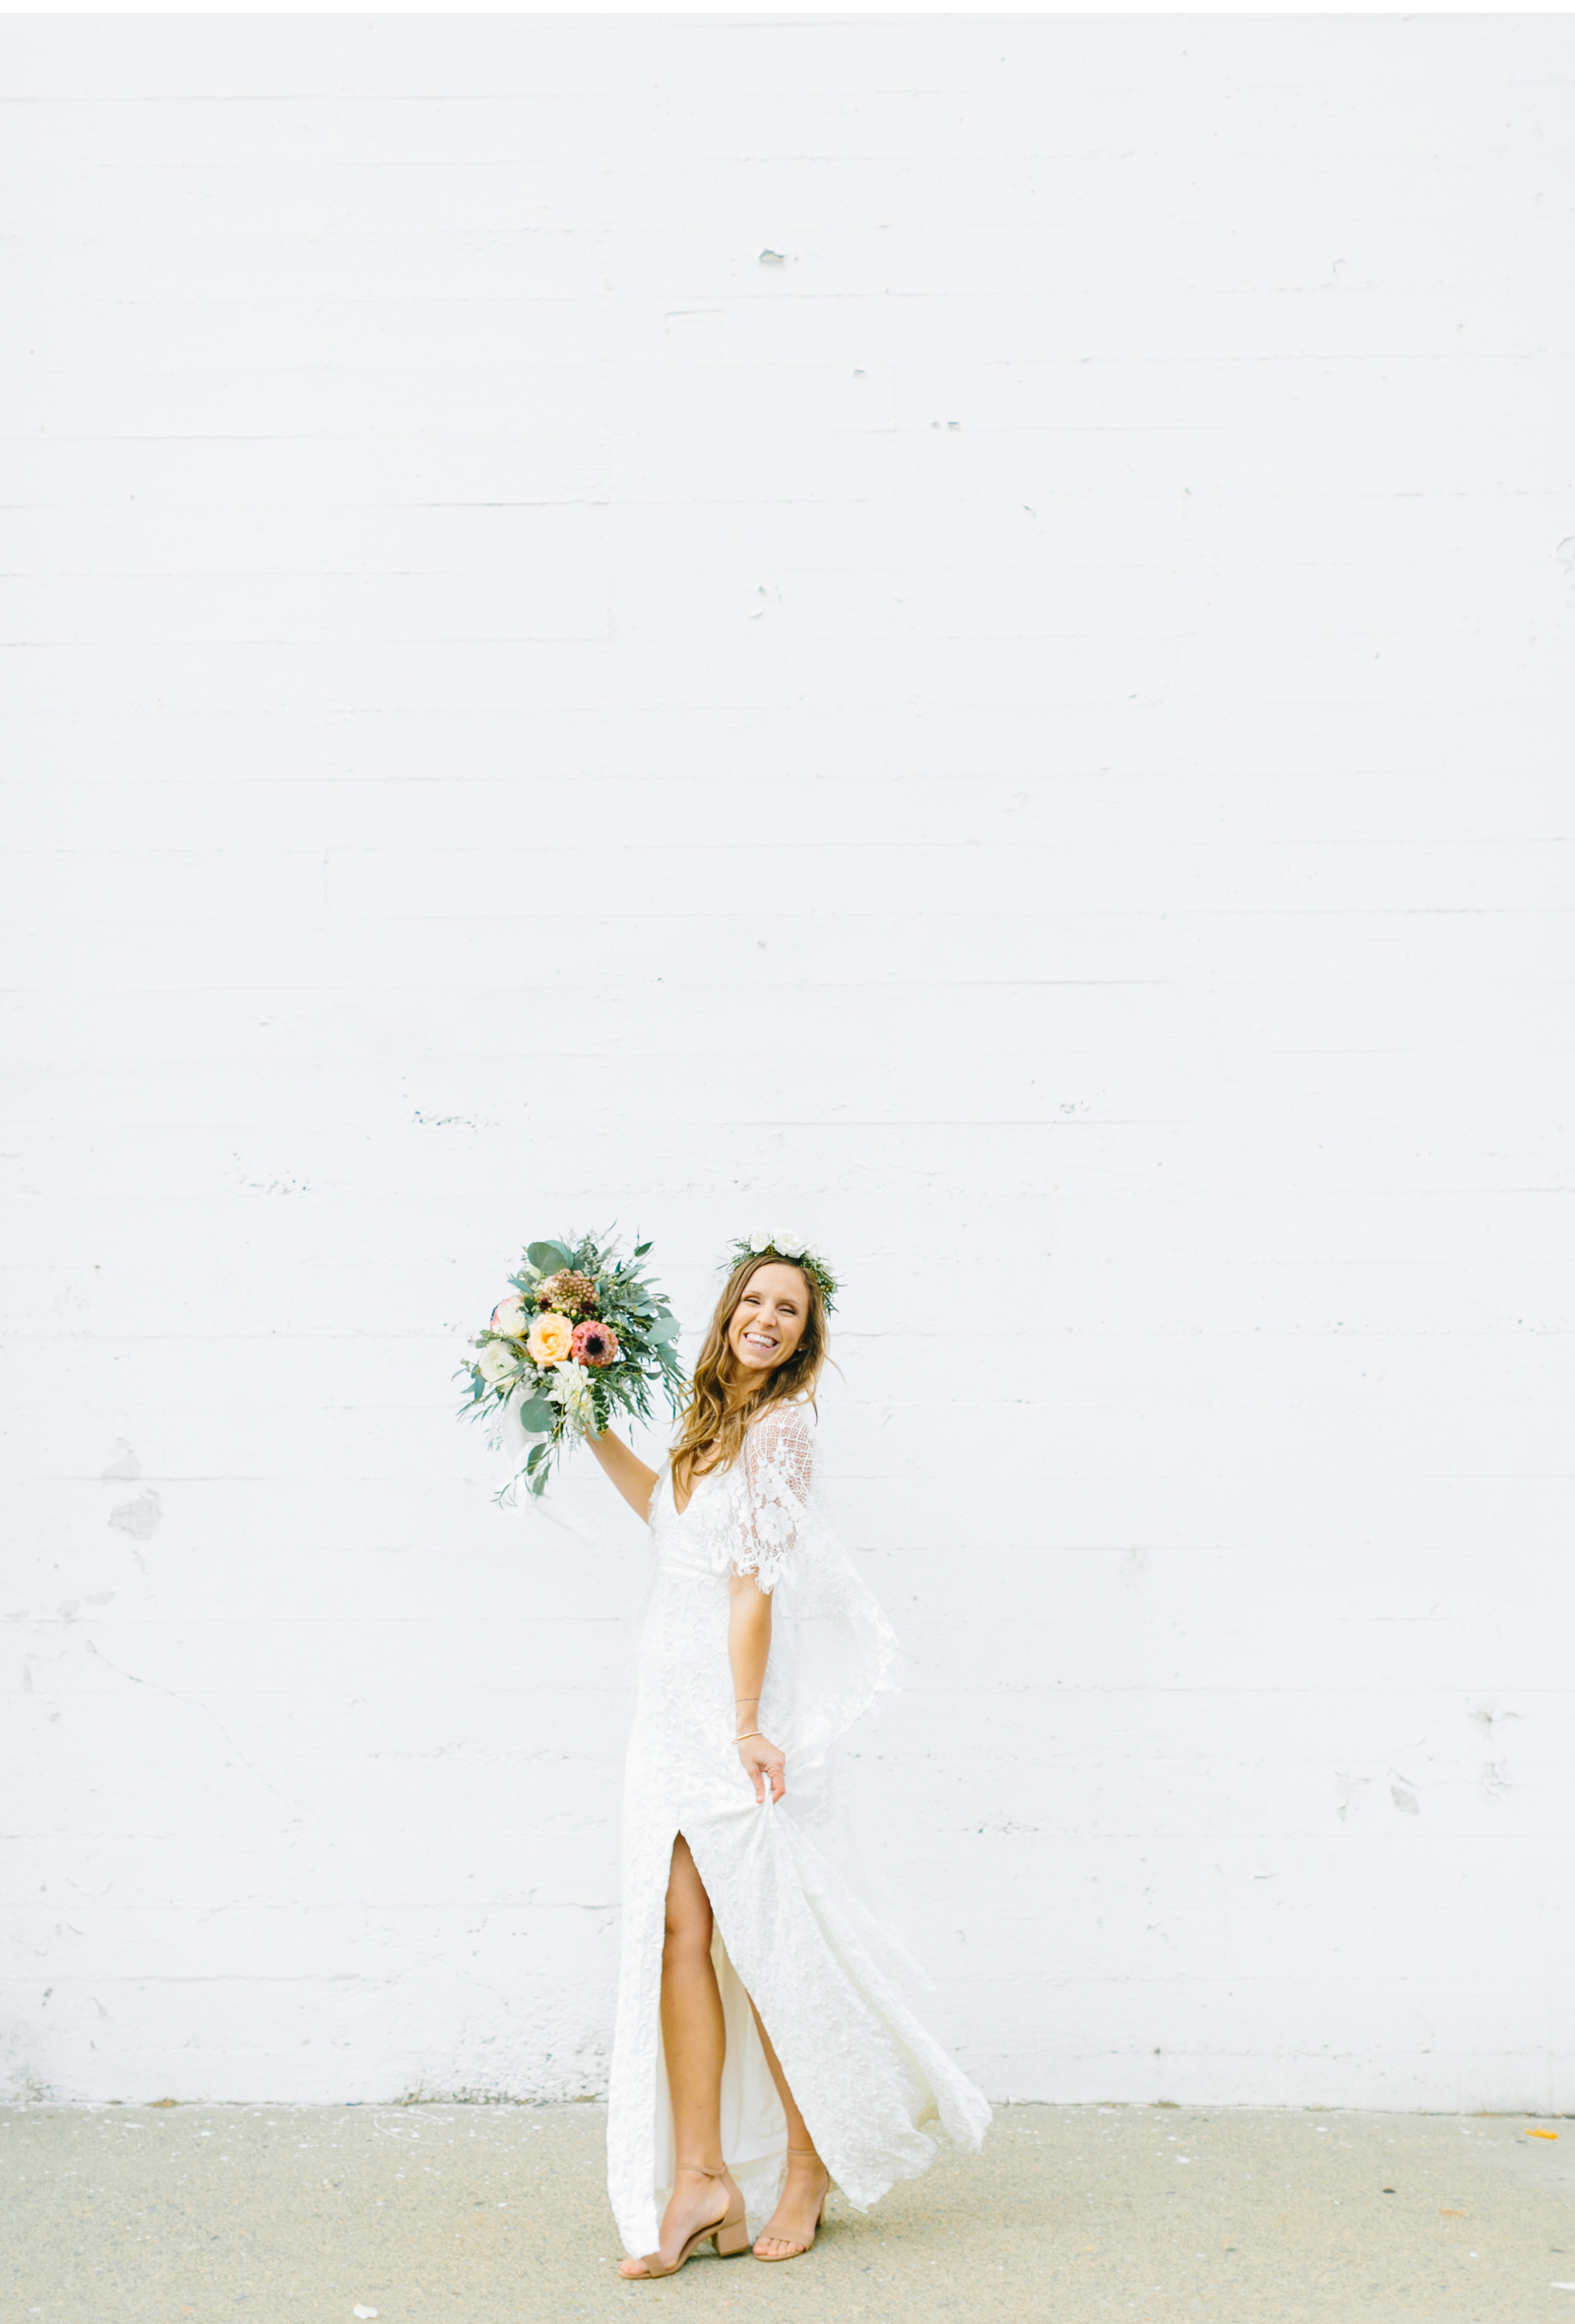 Best-First-Look-Wedding-San-Clemente-Natalie-Schutt-Photography_01.jpg